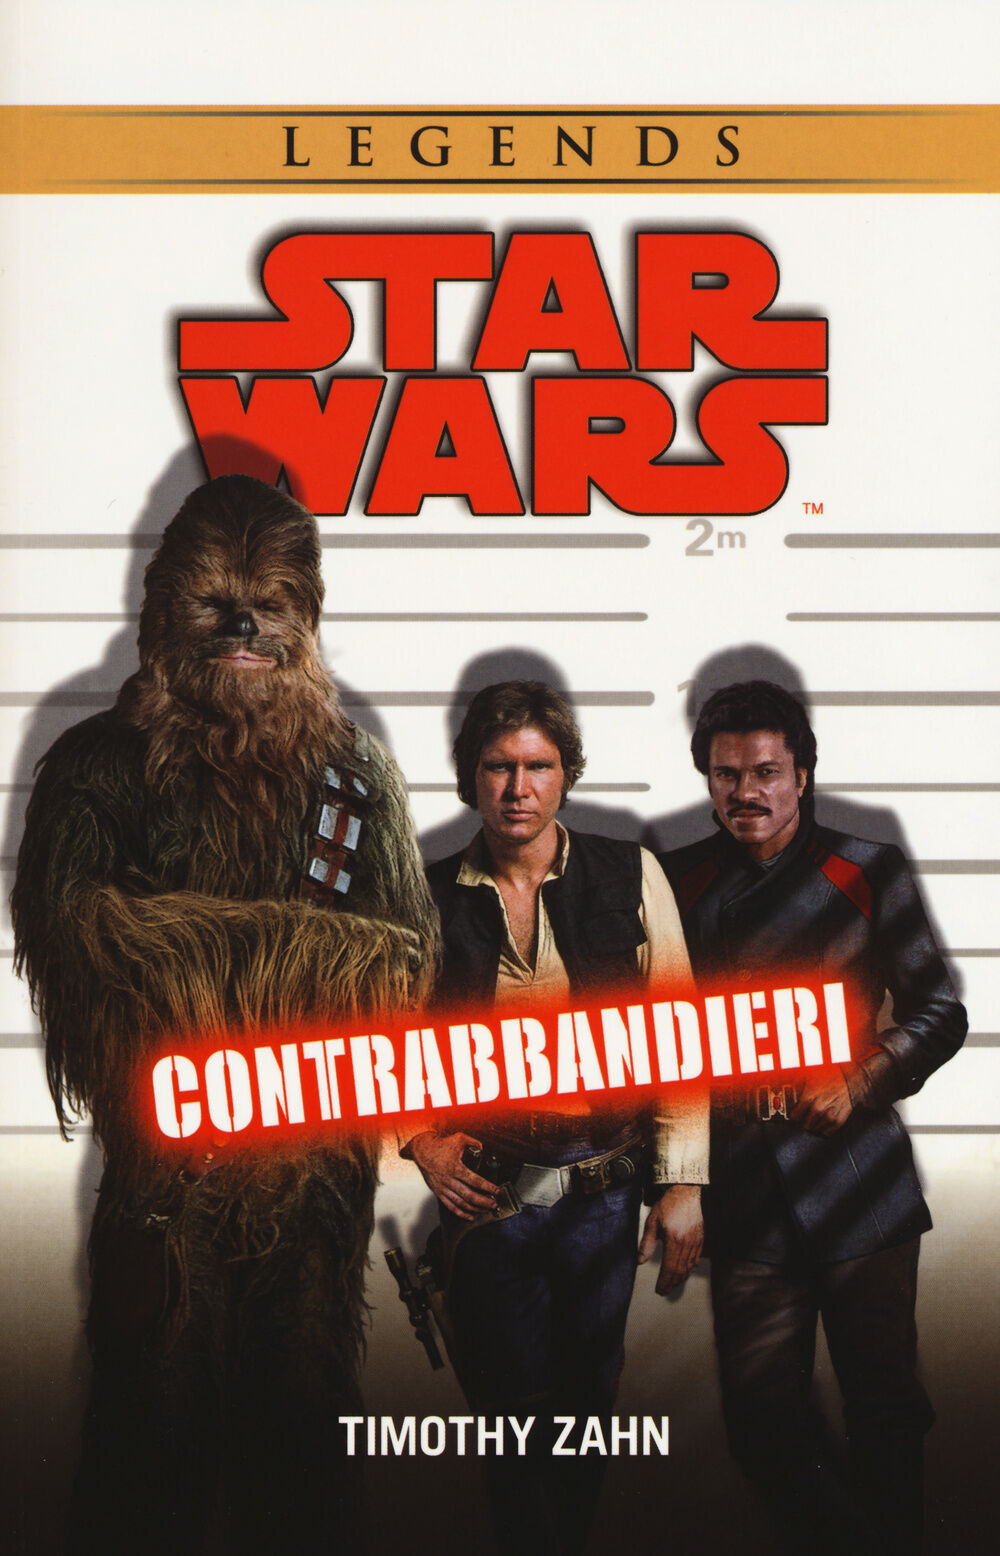 Contrabbandieri. Star Wars